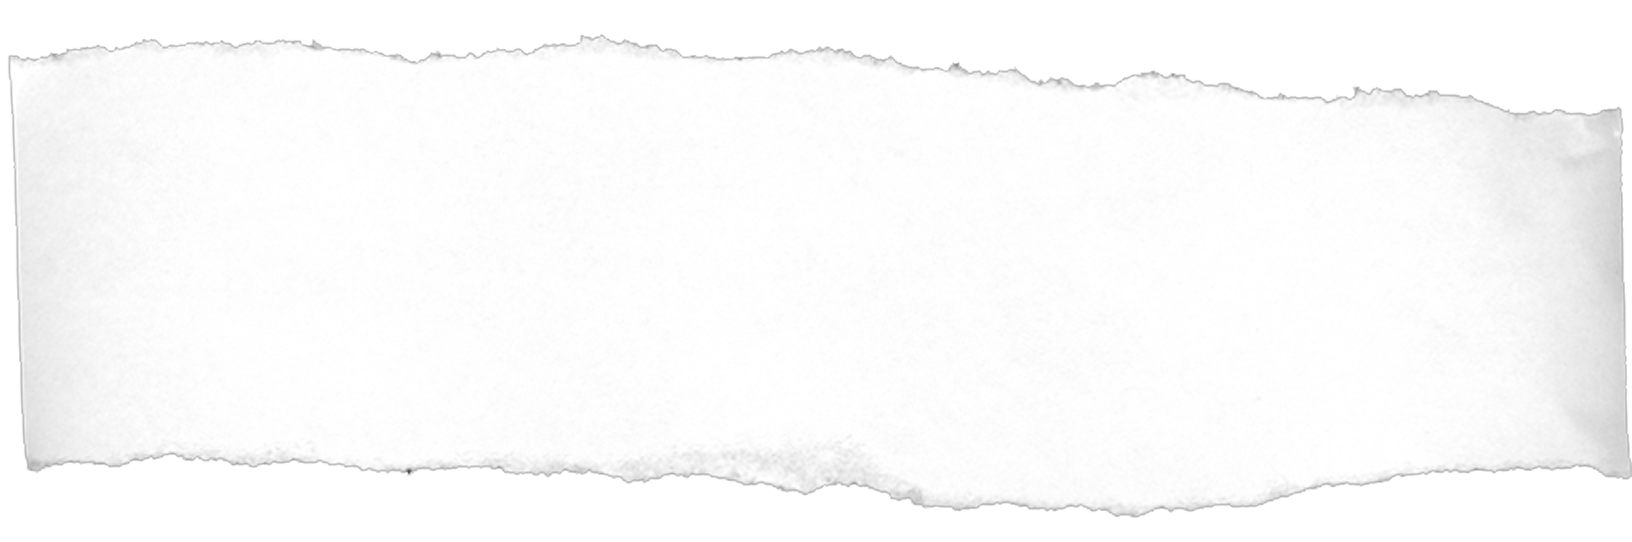 Ripped Notebook Paper White-Transparent Image image #48357